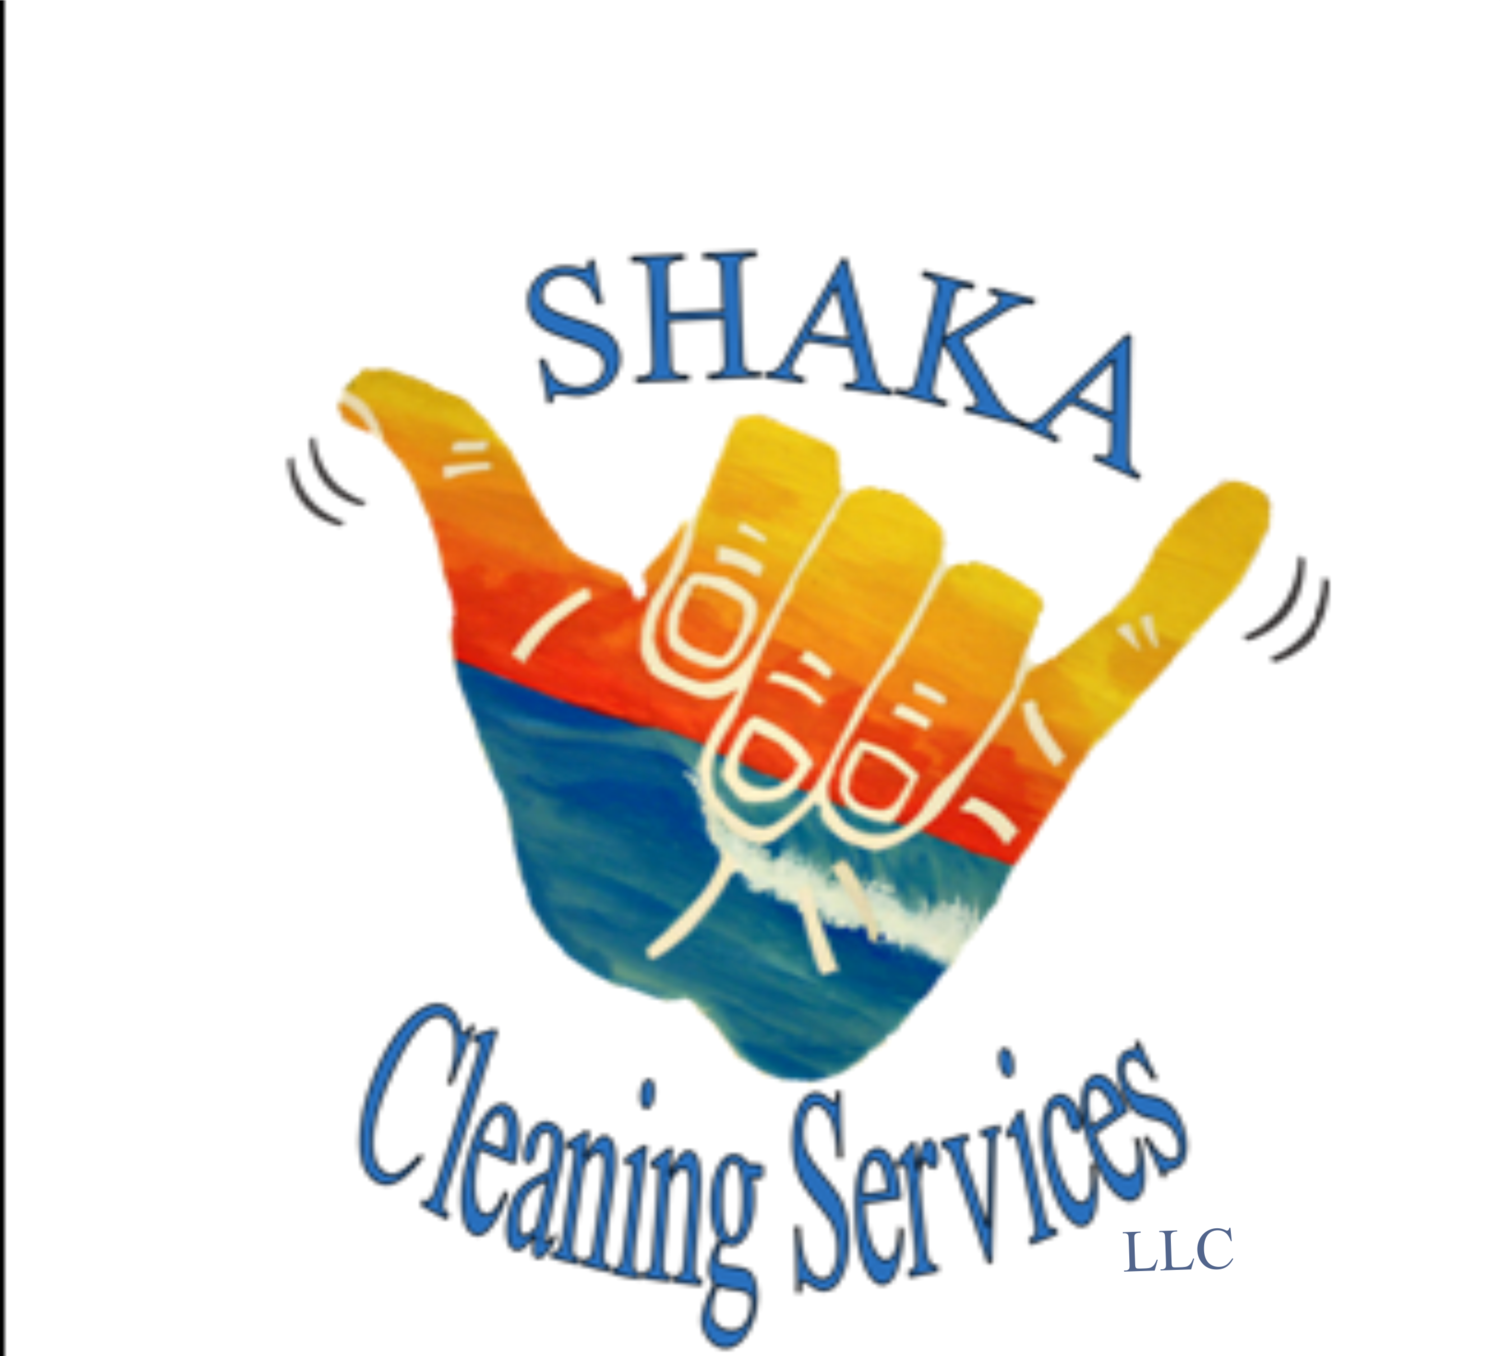 Shaka Cleaning Services, LLC